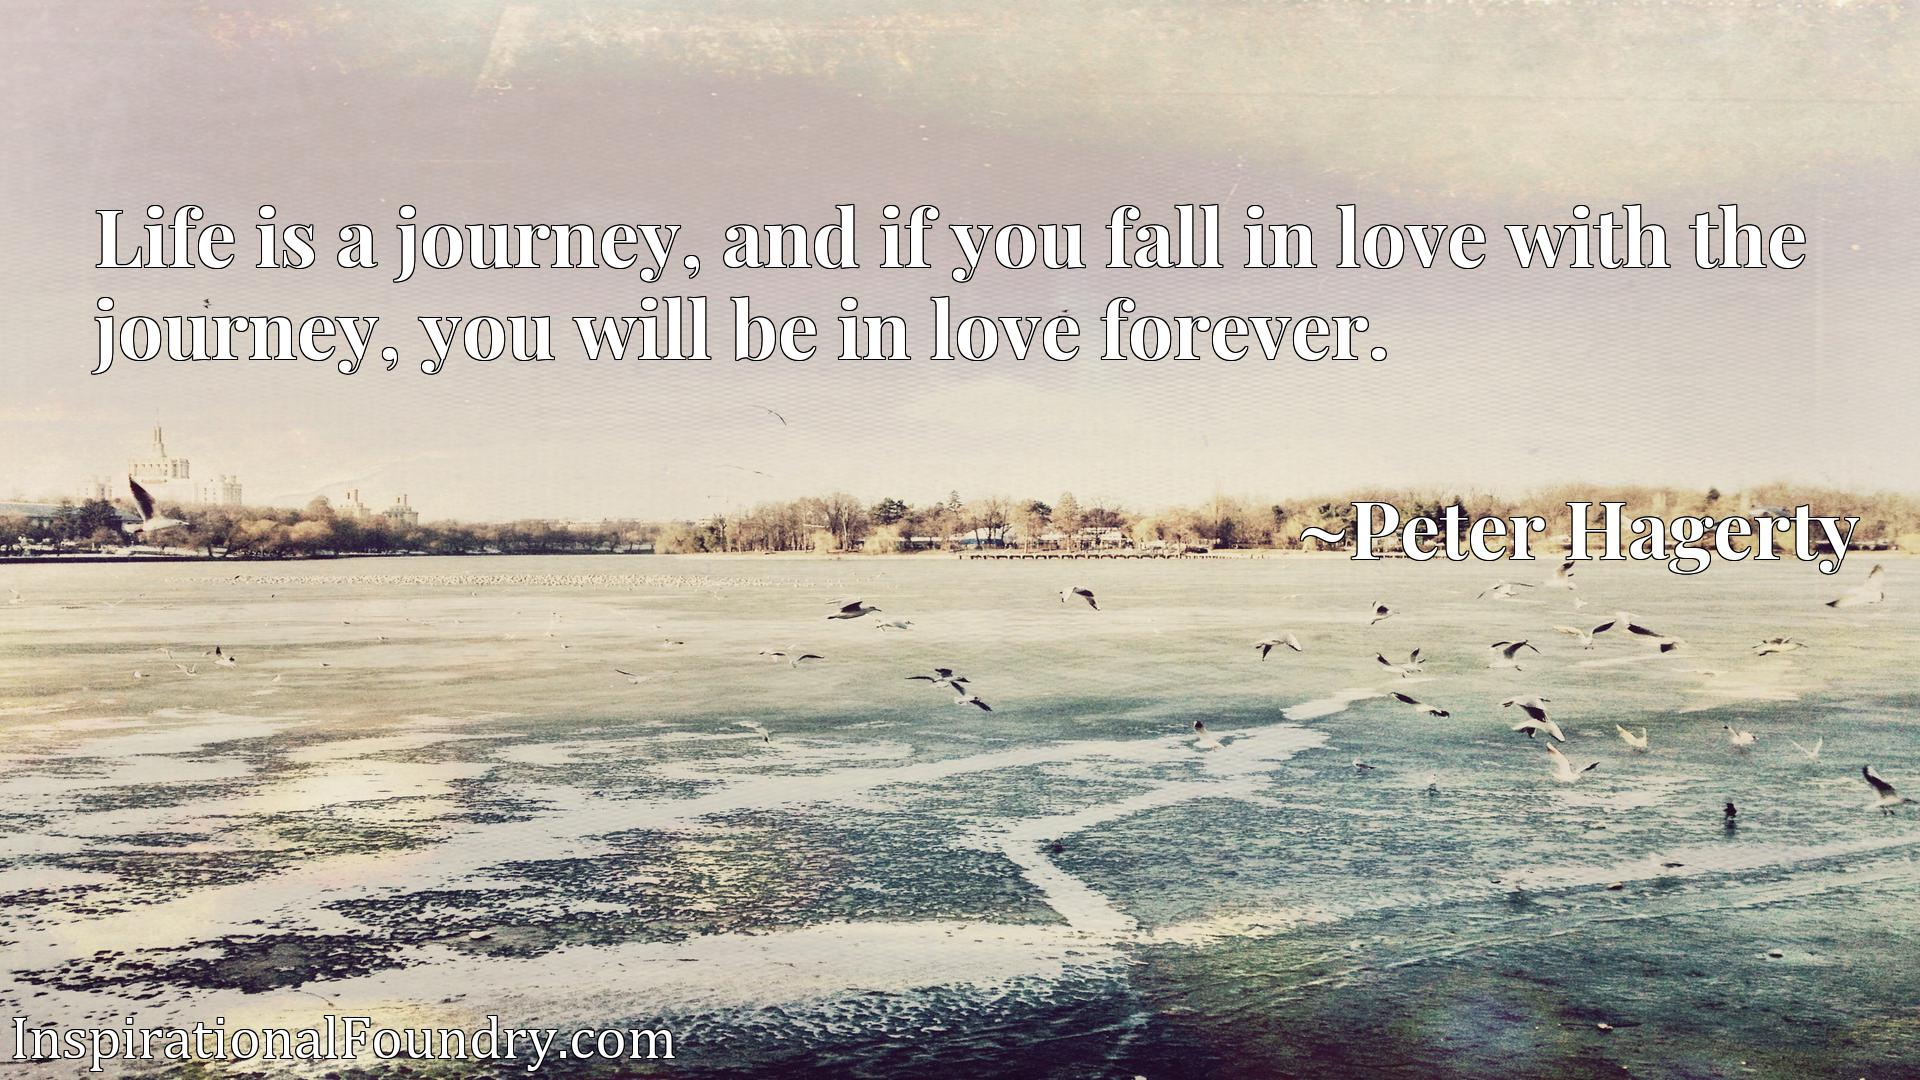 Quote Picture :Life is a journey, and if you fall in love with the journey, you will be in love forever.